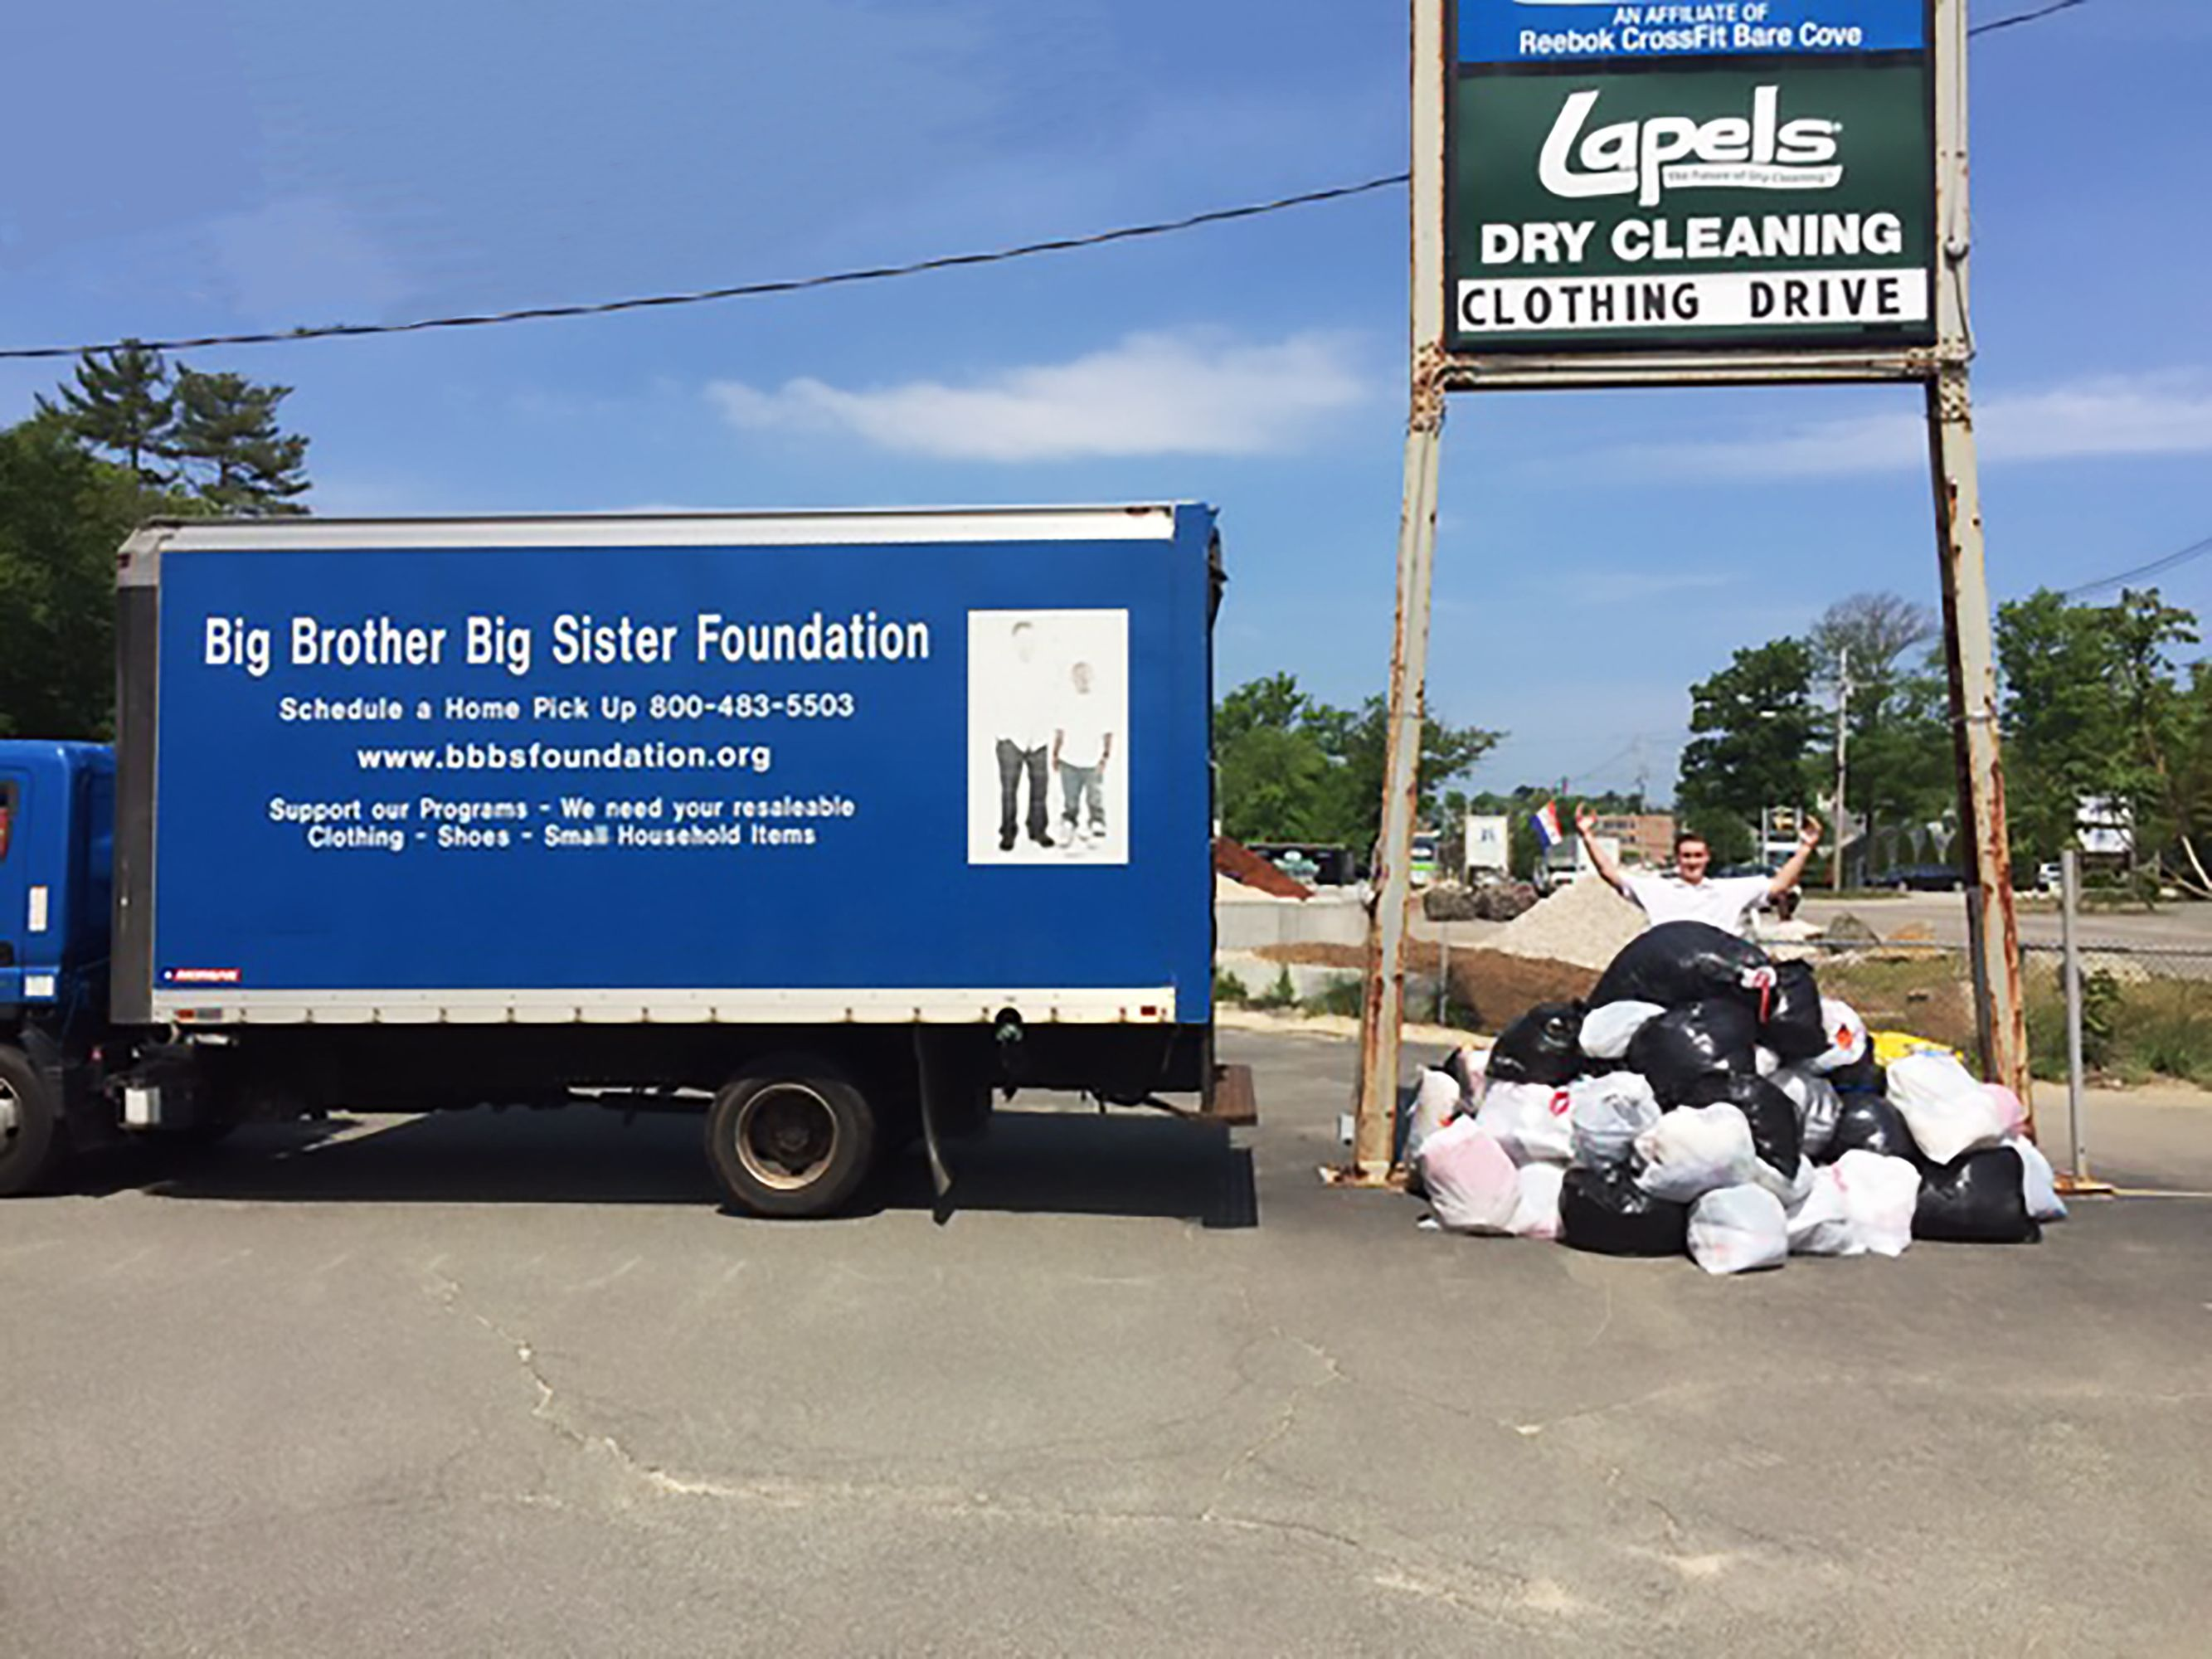 Worth the weight. Lapels Dry Cleaning's annual clothing drive to benefit Big Brother Big Sister raises more than 13,000 pounds of clothing